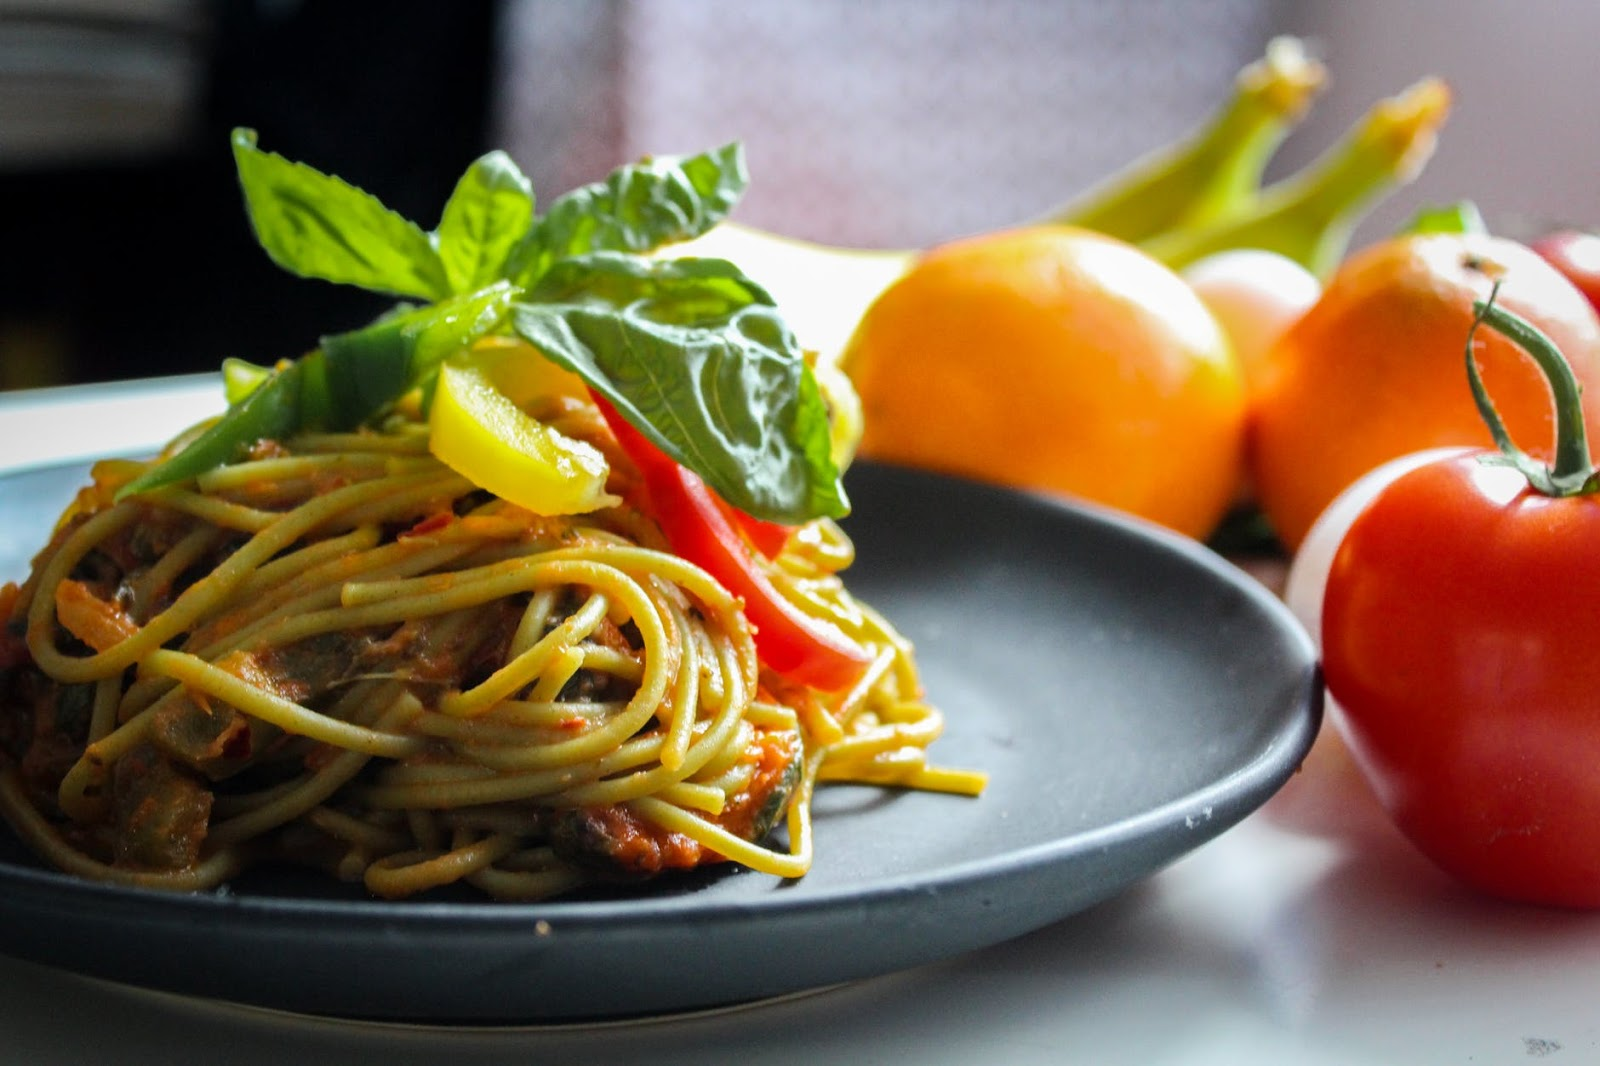 spaghetti dish next to fruit from Moretti's